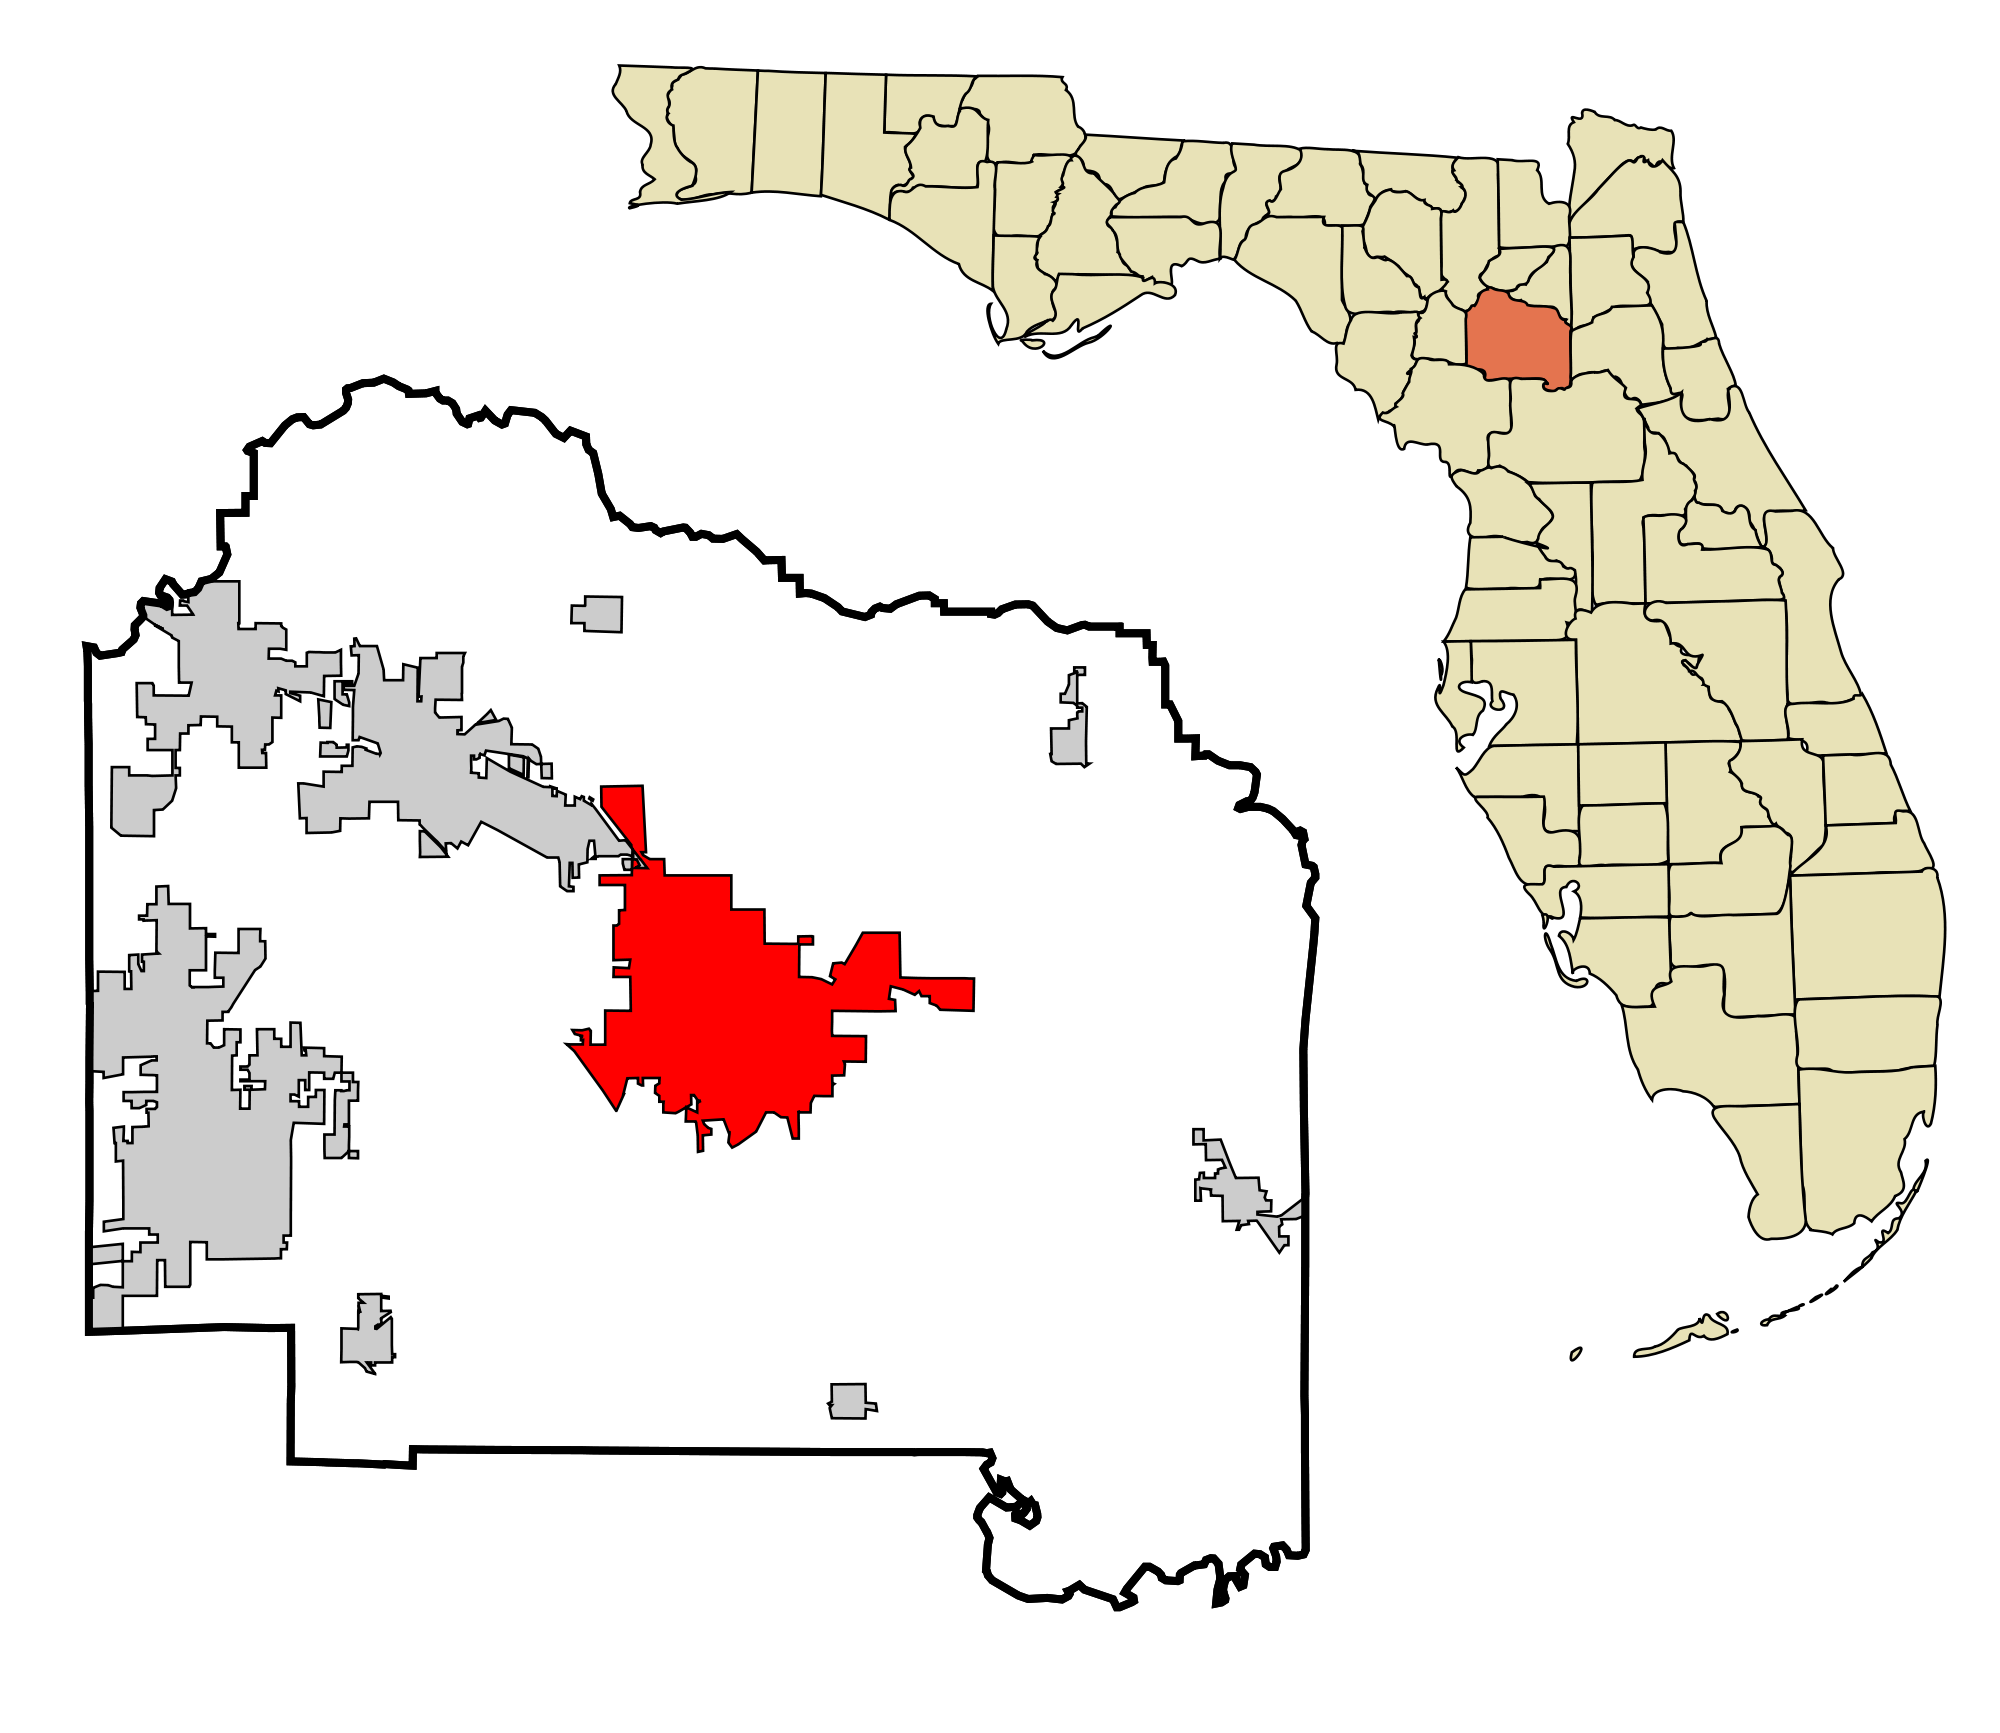 Gainesville, Florida and Alachua County